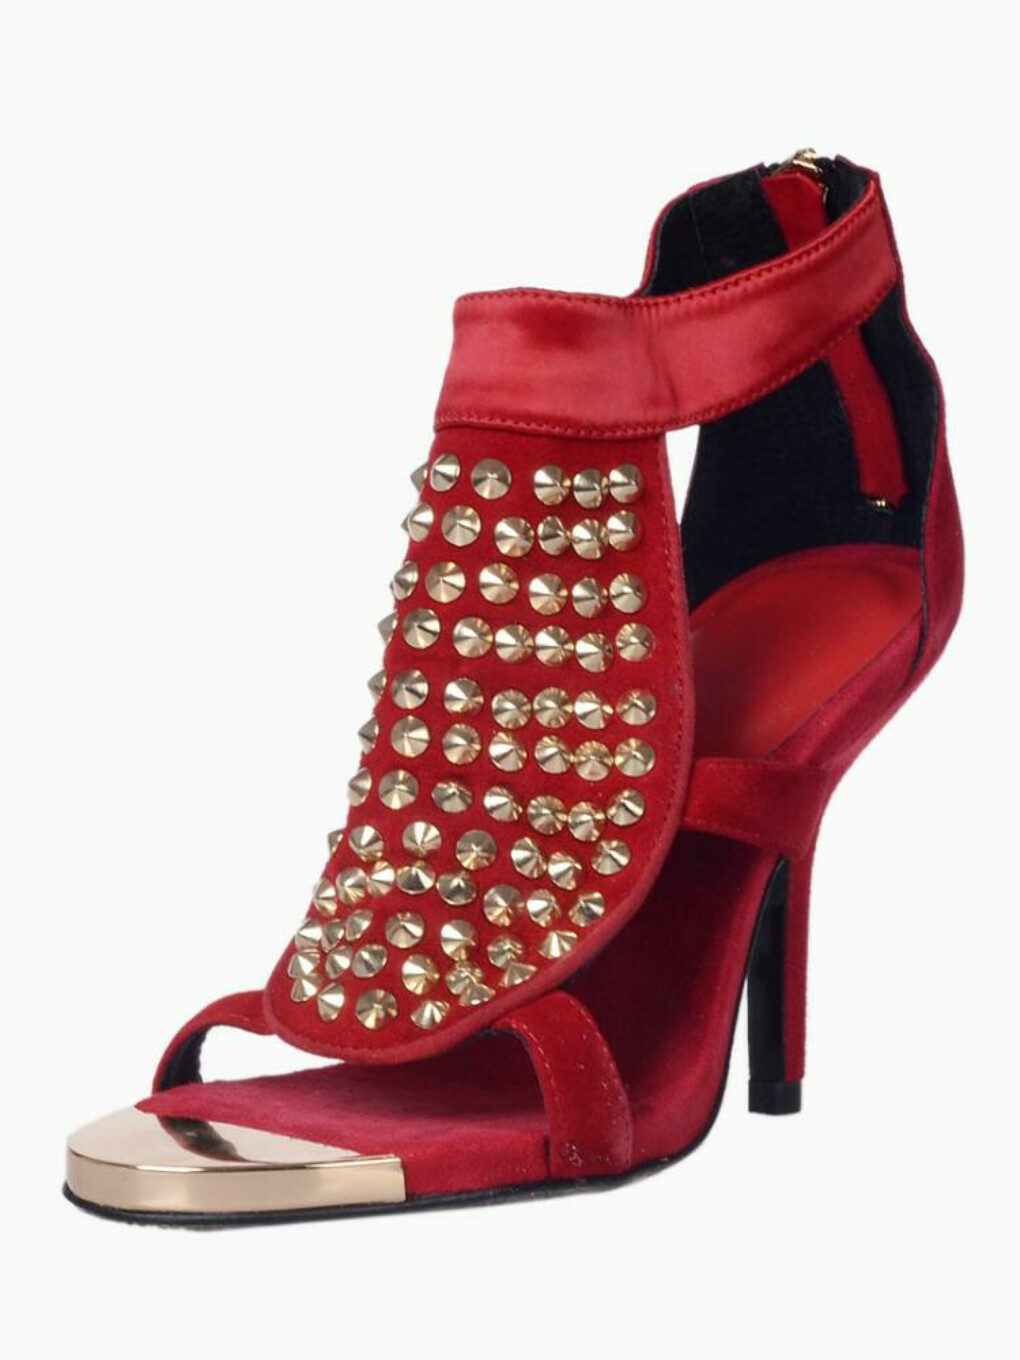 Red Suede Studs Heeled Sandals - Choies.com